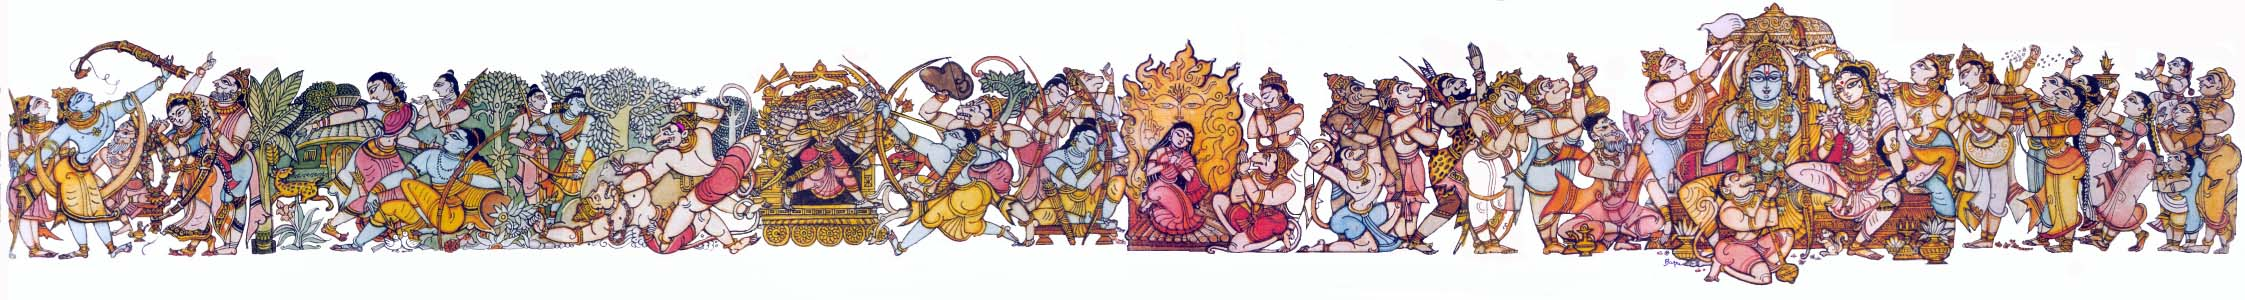 Ramayana Painting by Bapu